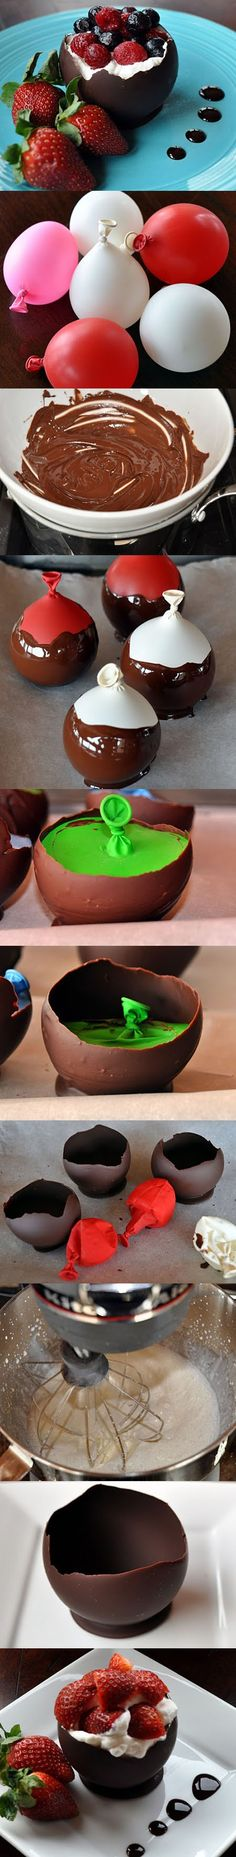 Chocolate bowl! OK, not so healthy, but very cute!